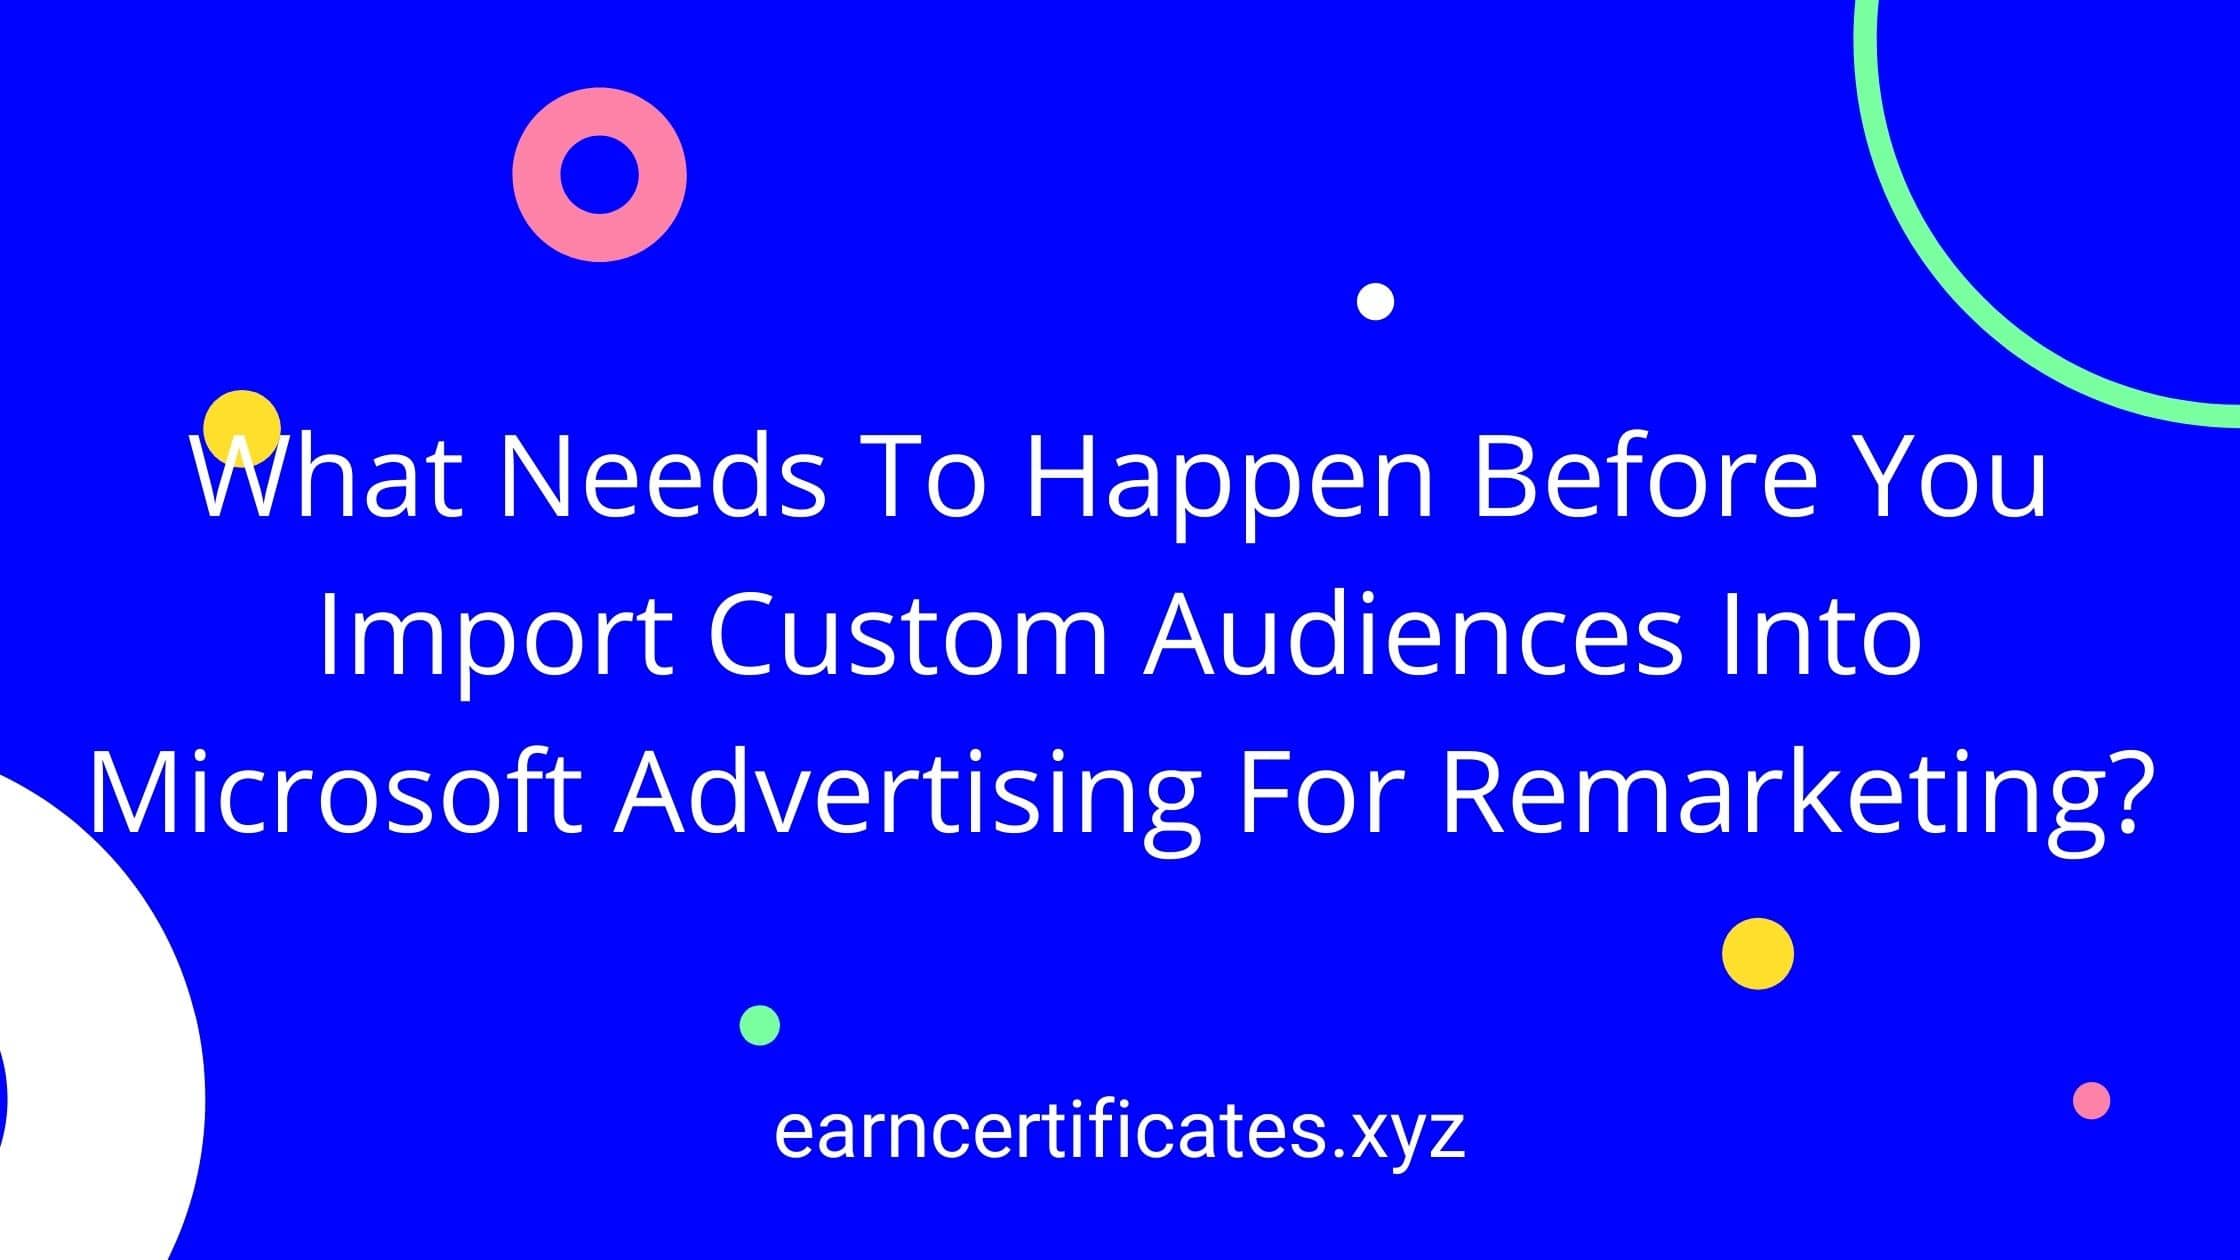 What Needs To Happen Before You Import Custom Audiences Into Microsoft Advertising For Remarketing?